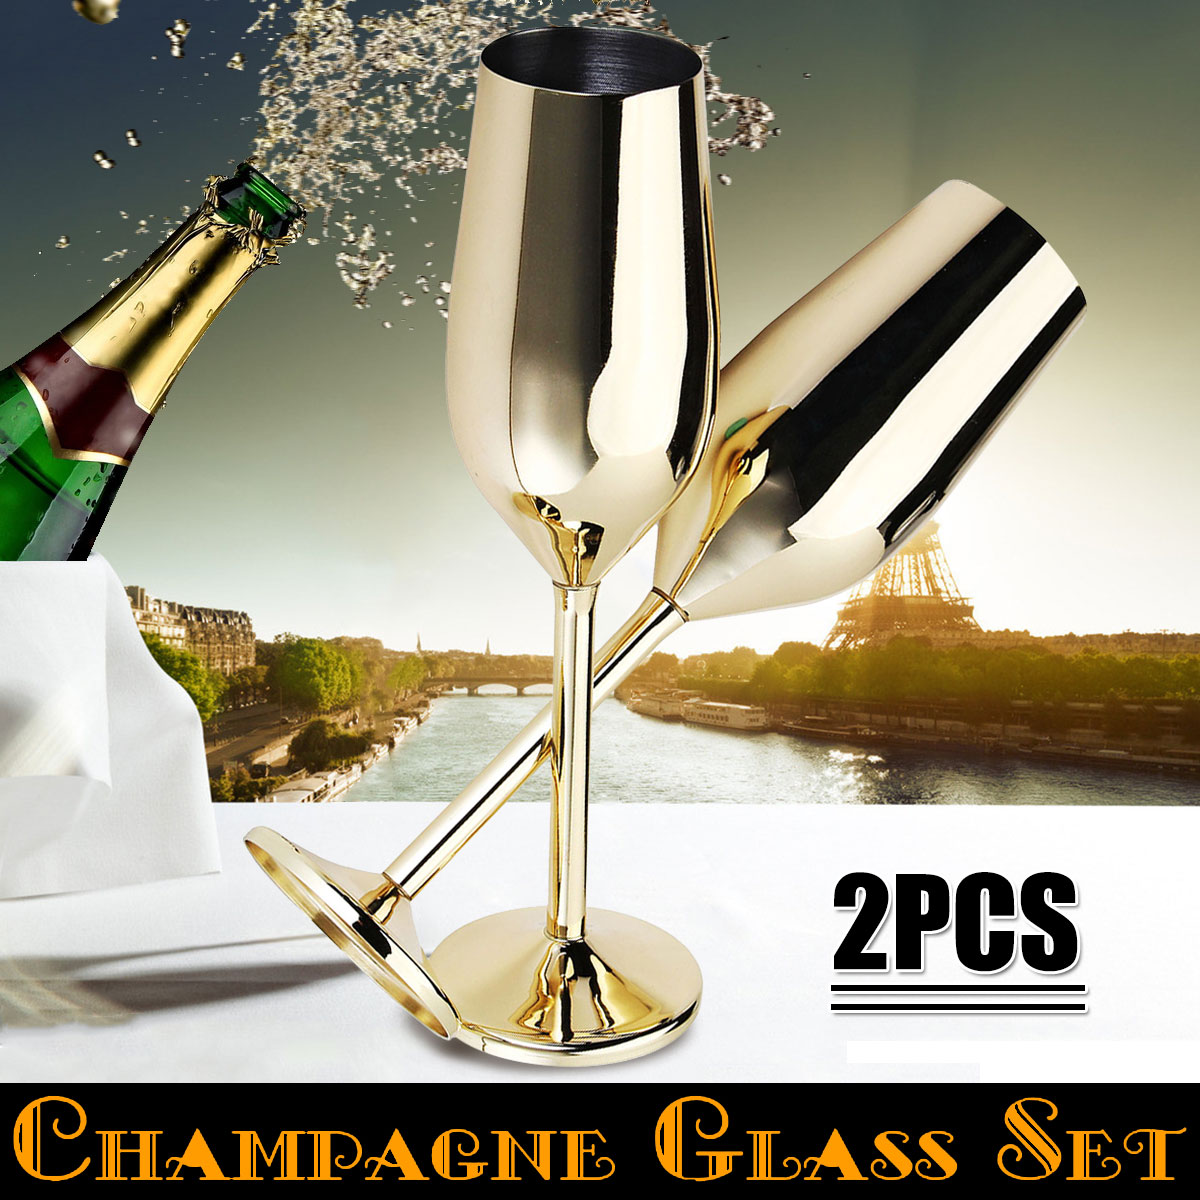 2Pcs/set Shatterproof Stainless Champagne Glasses Brushed Gold Wedding Toasting Champagne Flutes Drink Cup Party Marriage Wine2Pcs/set Shatterproof Stainless Champagne Glasses Brushed Gold Wedding Toasting Champagne Flutes Drink Cup Party Marriage Wine